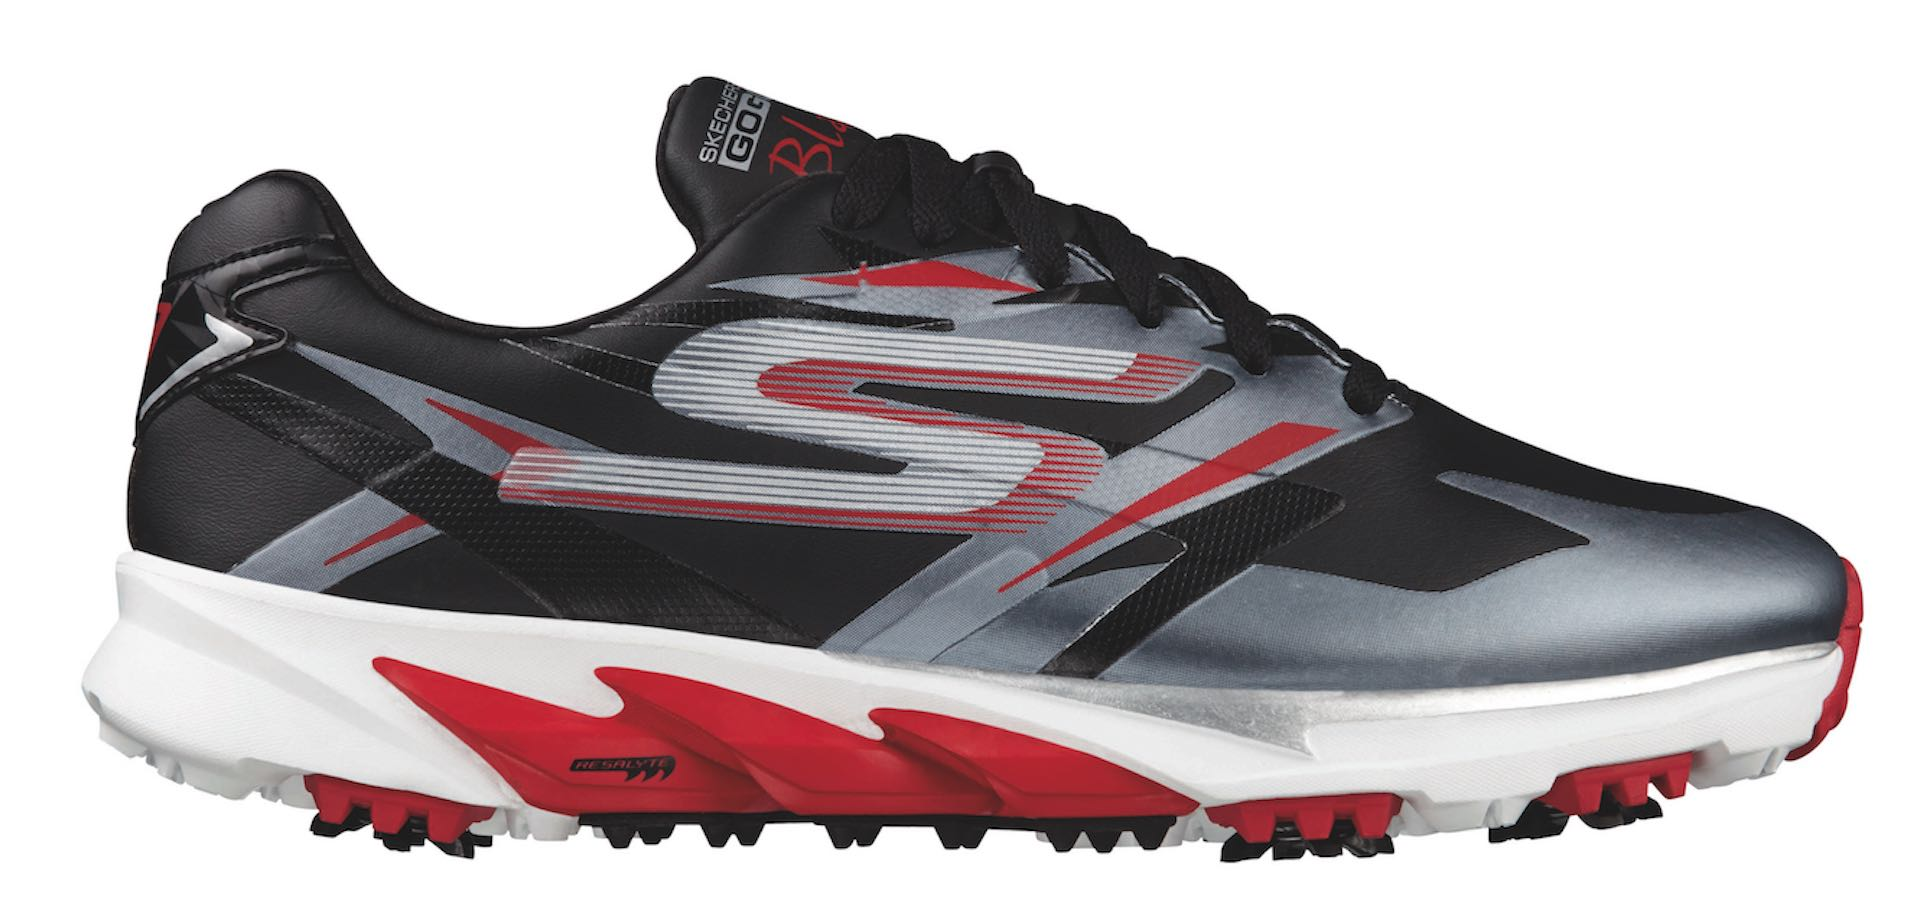 New Skechers Golf Shoes - GolfPunkHQ 6e4f17db2f09